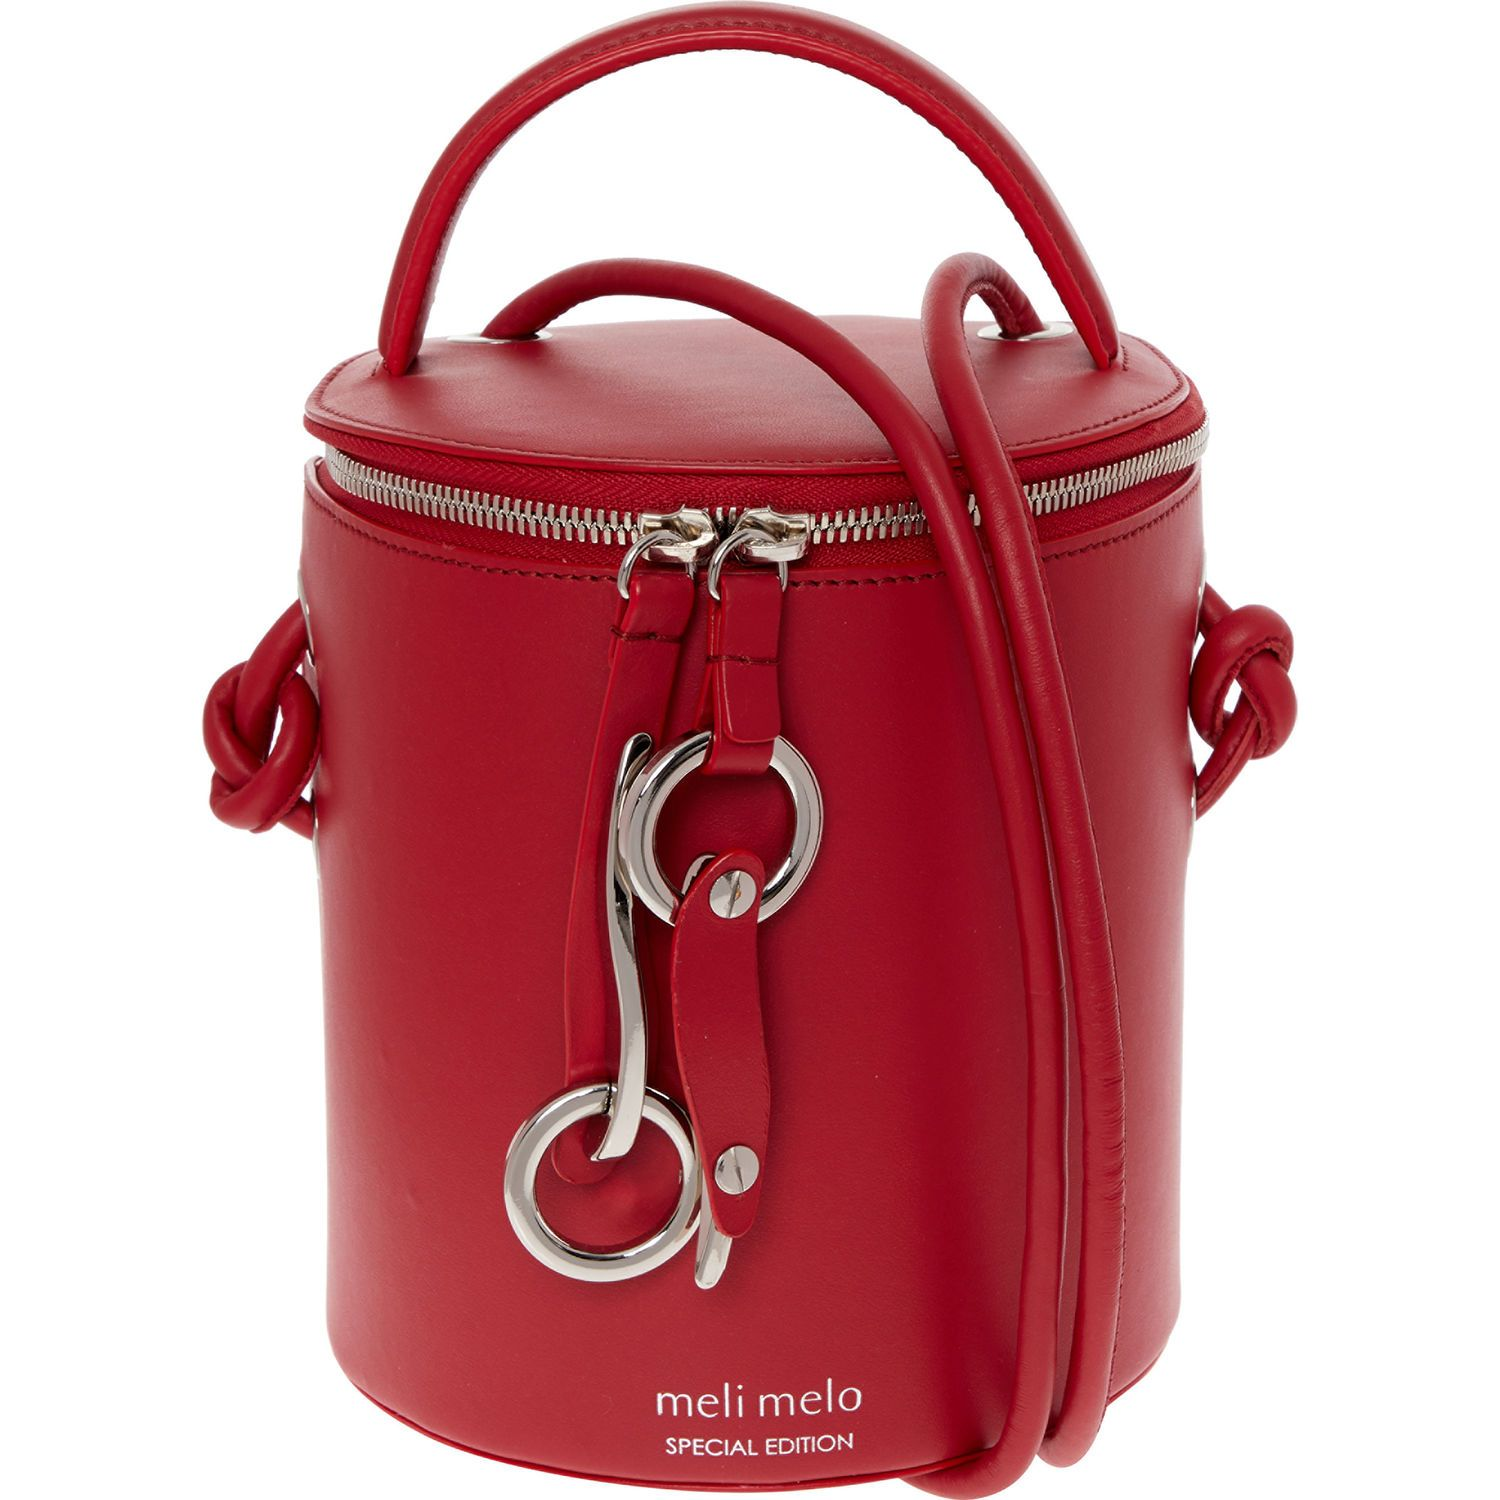 2c985202abd Severine Poppy Red Bag - Handbags - Accessories - Women - TK Maxx ...